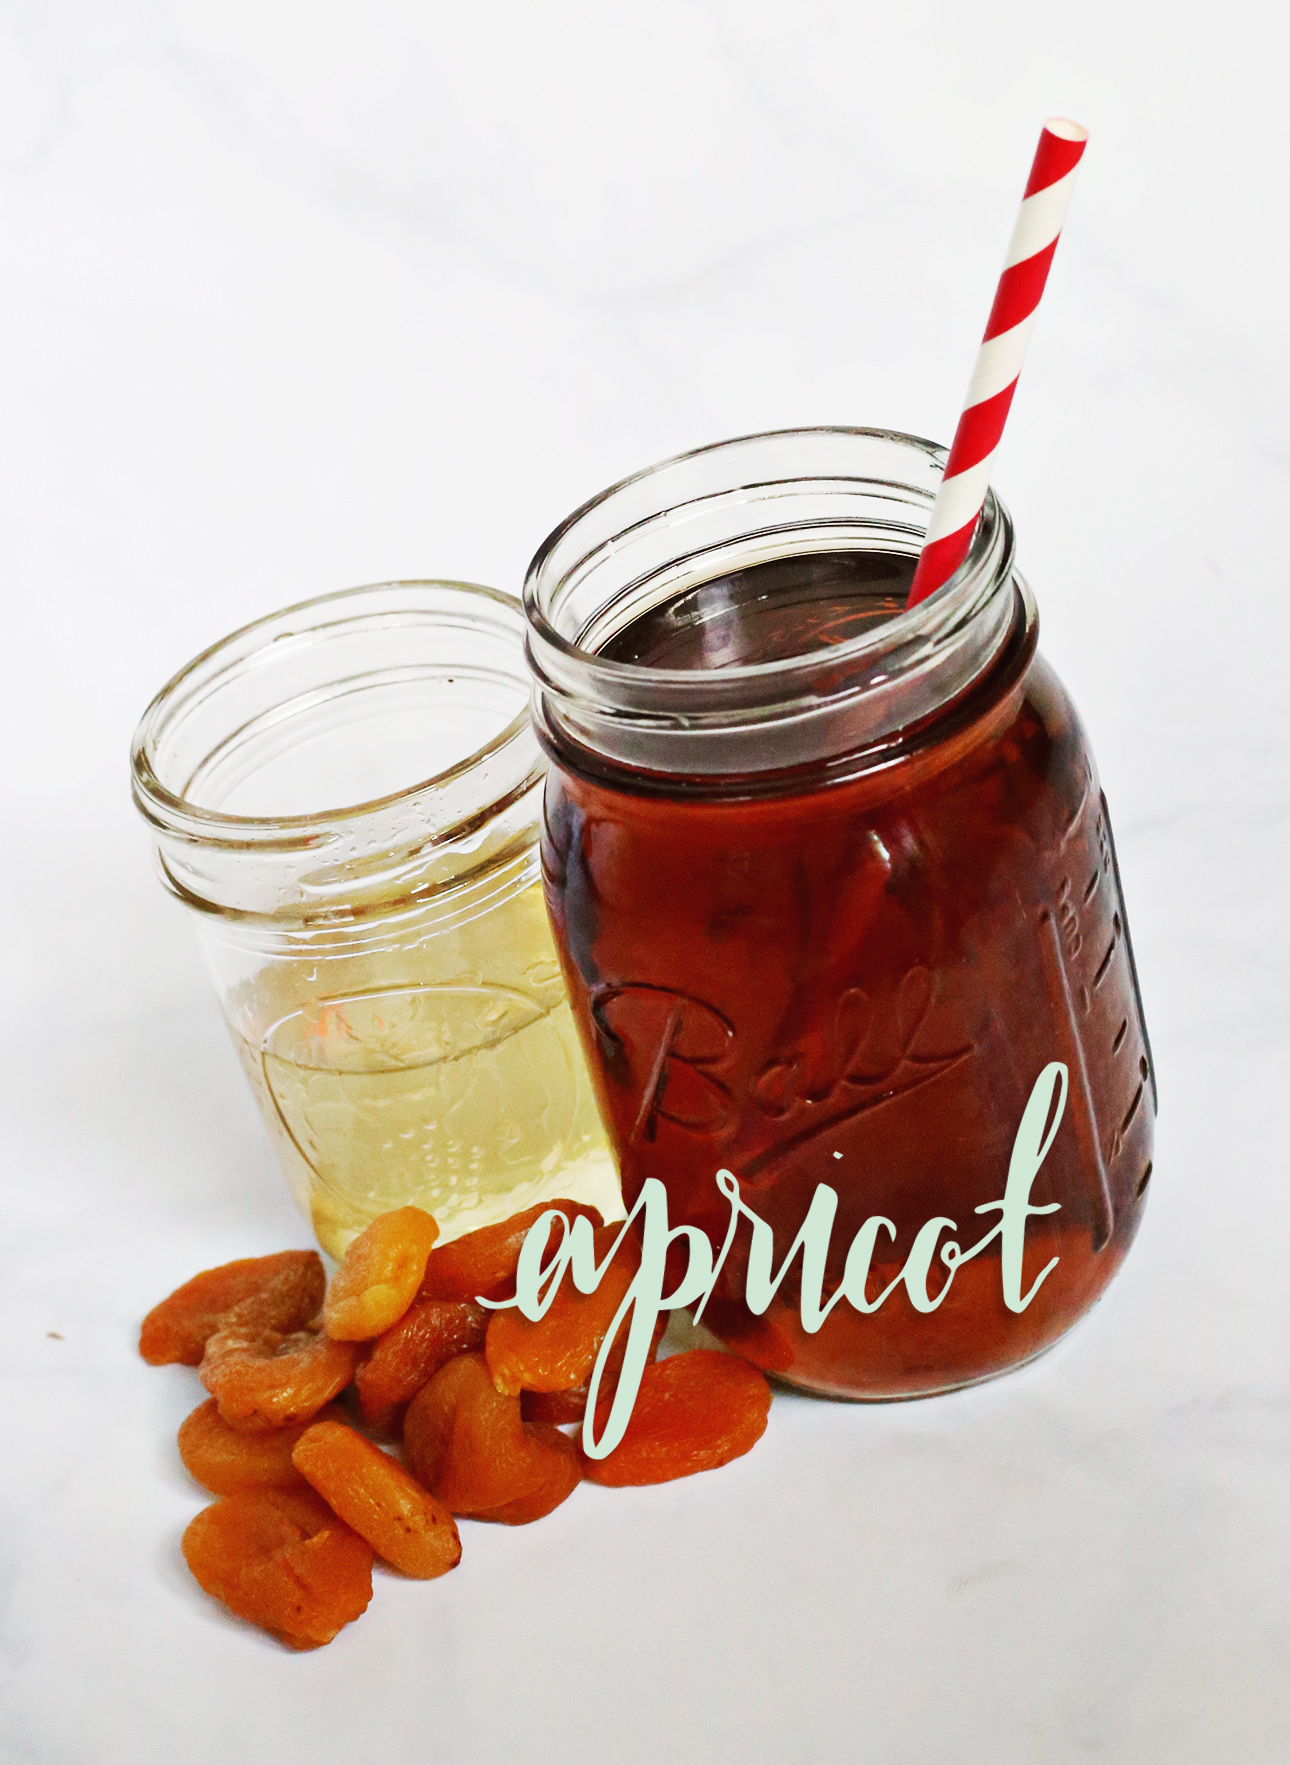 Stir up some apricot-flavored simple syrup to add flavor to your iced tea! On Lily & Val Living